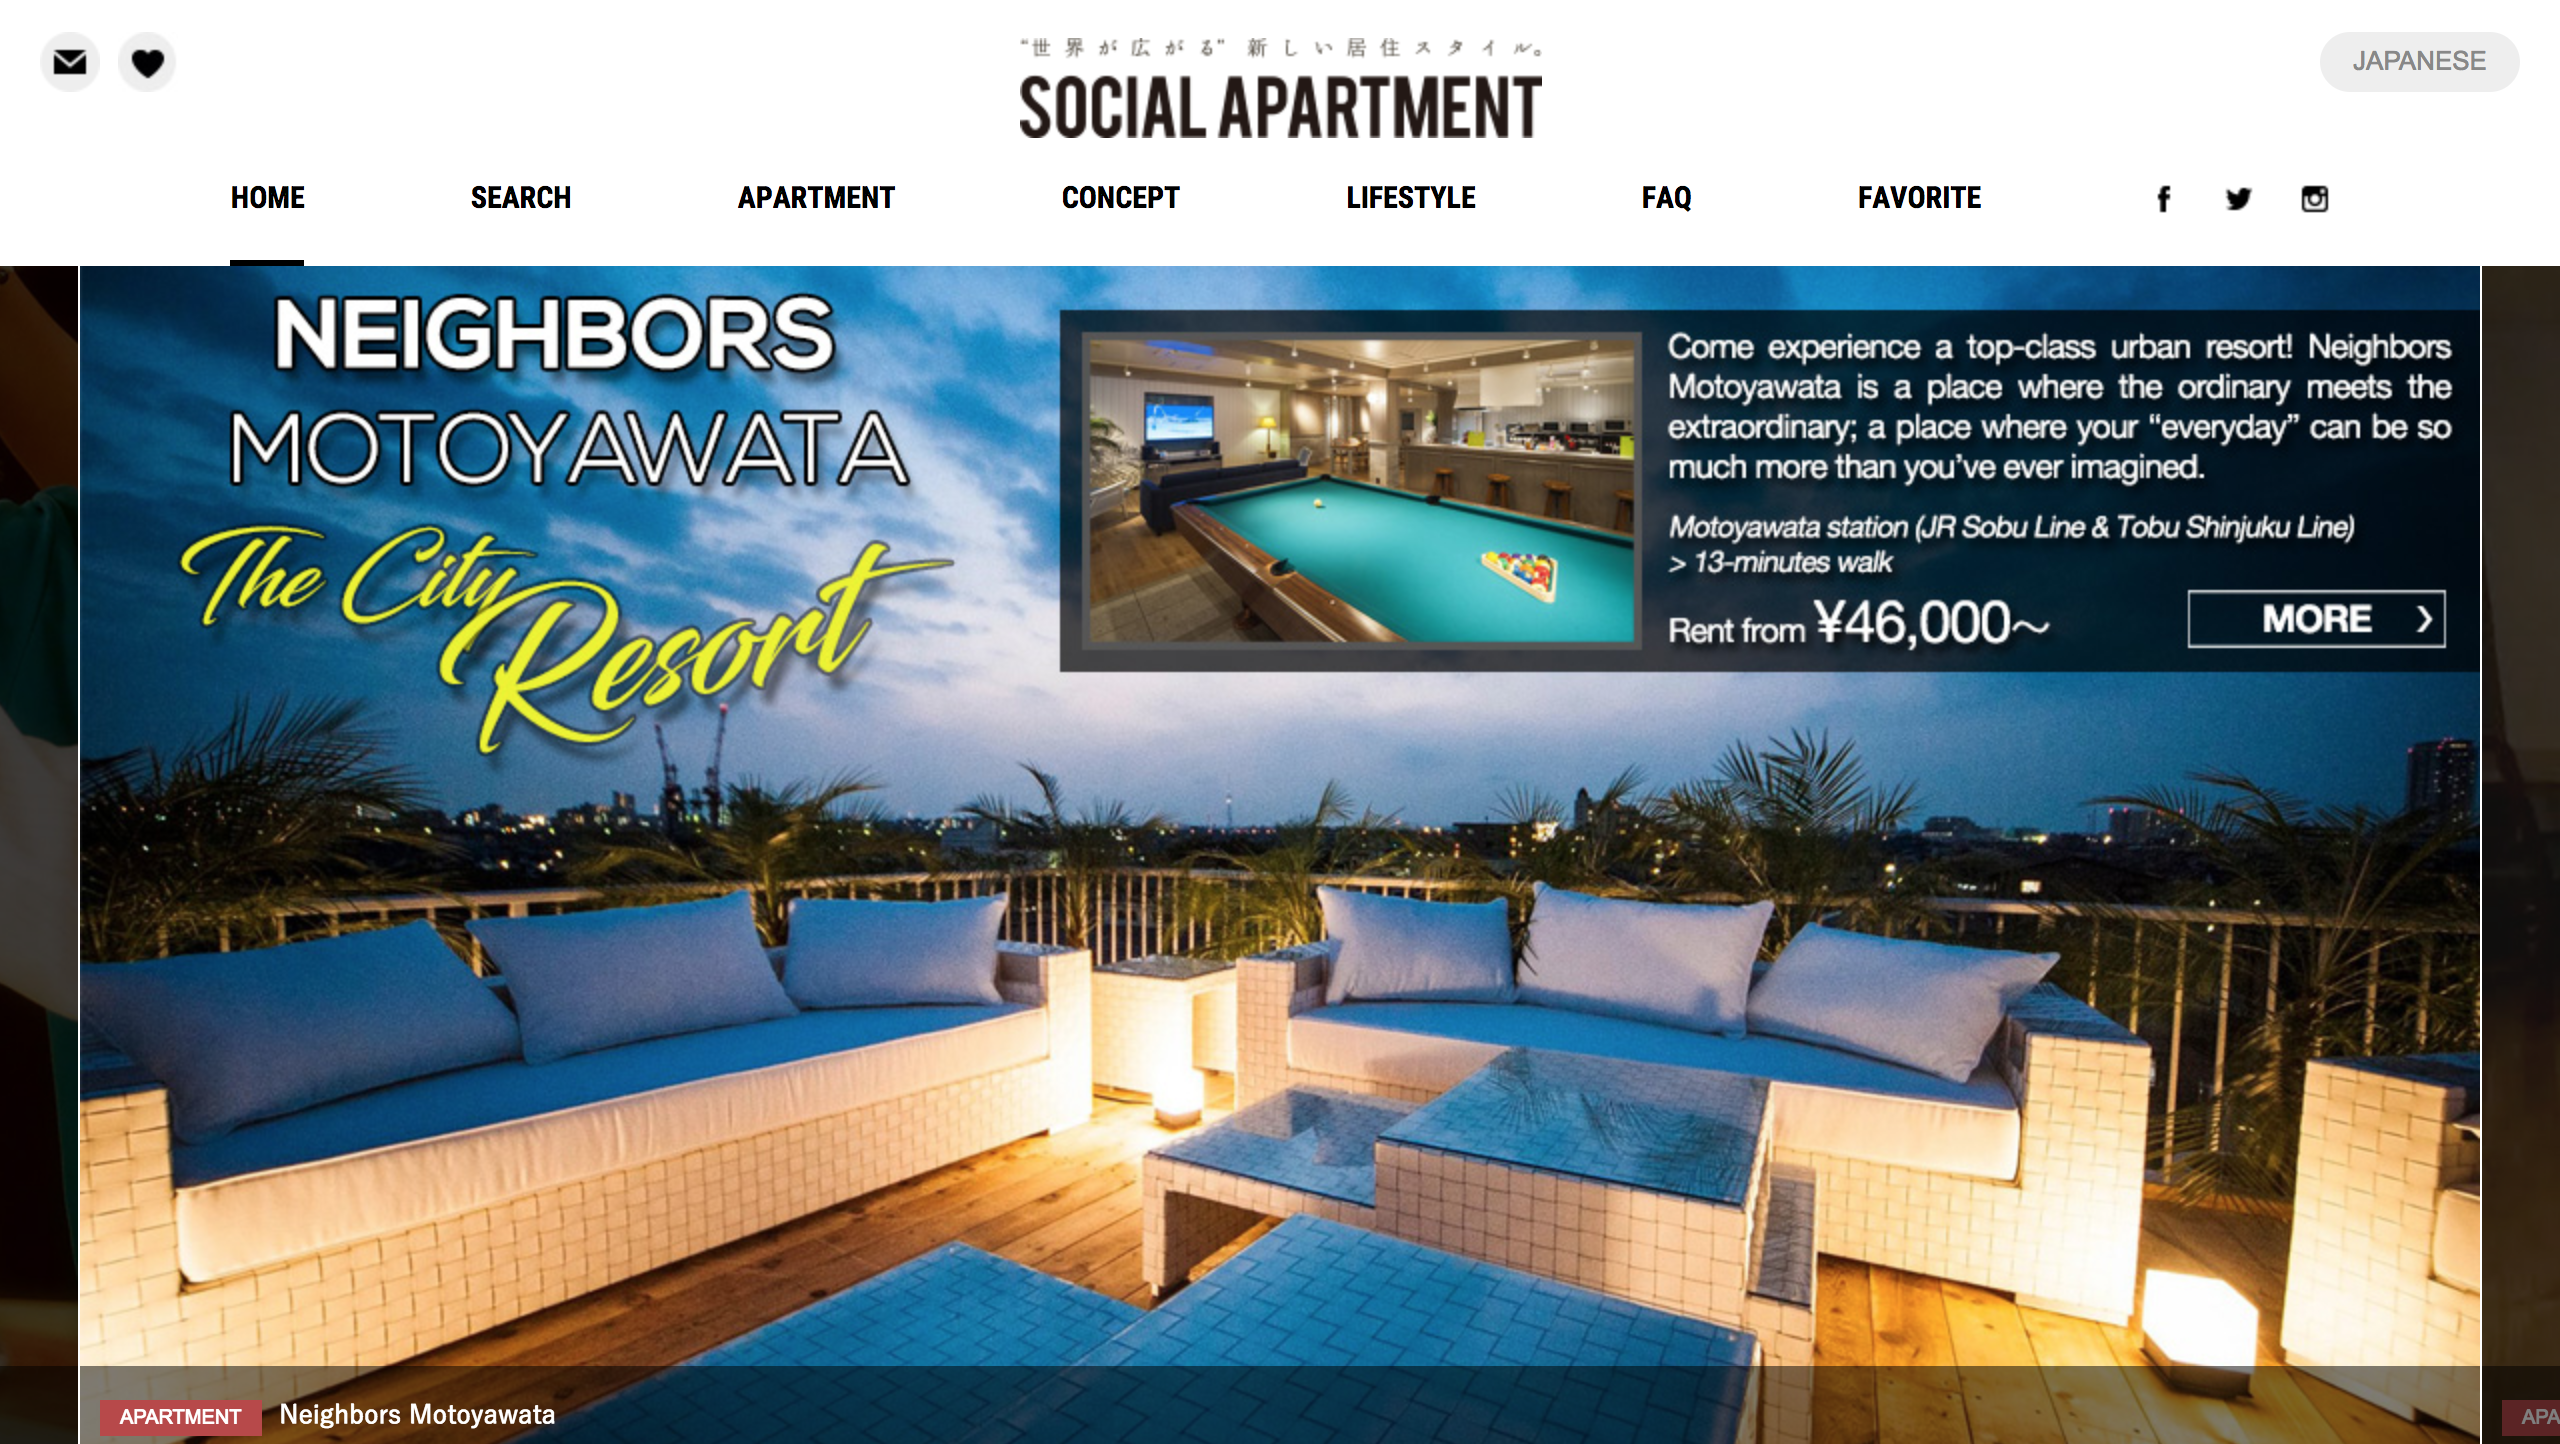 Social apartment which you can experience interactive life events.